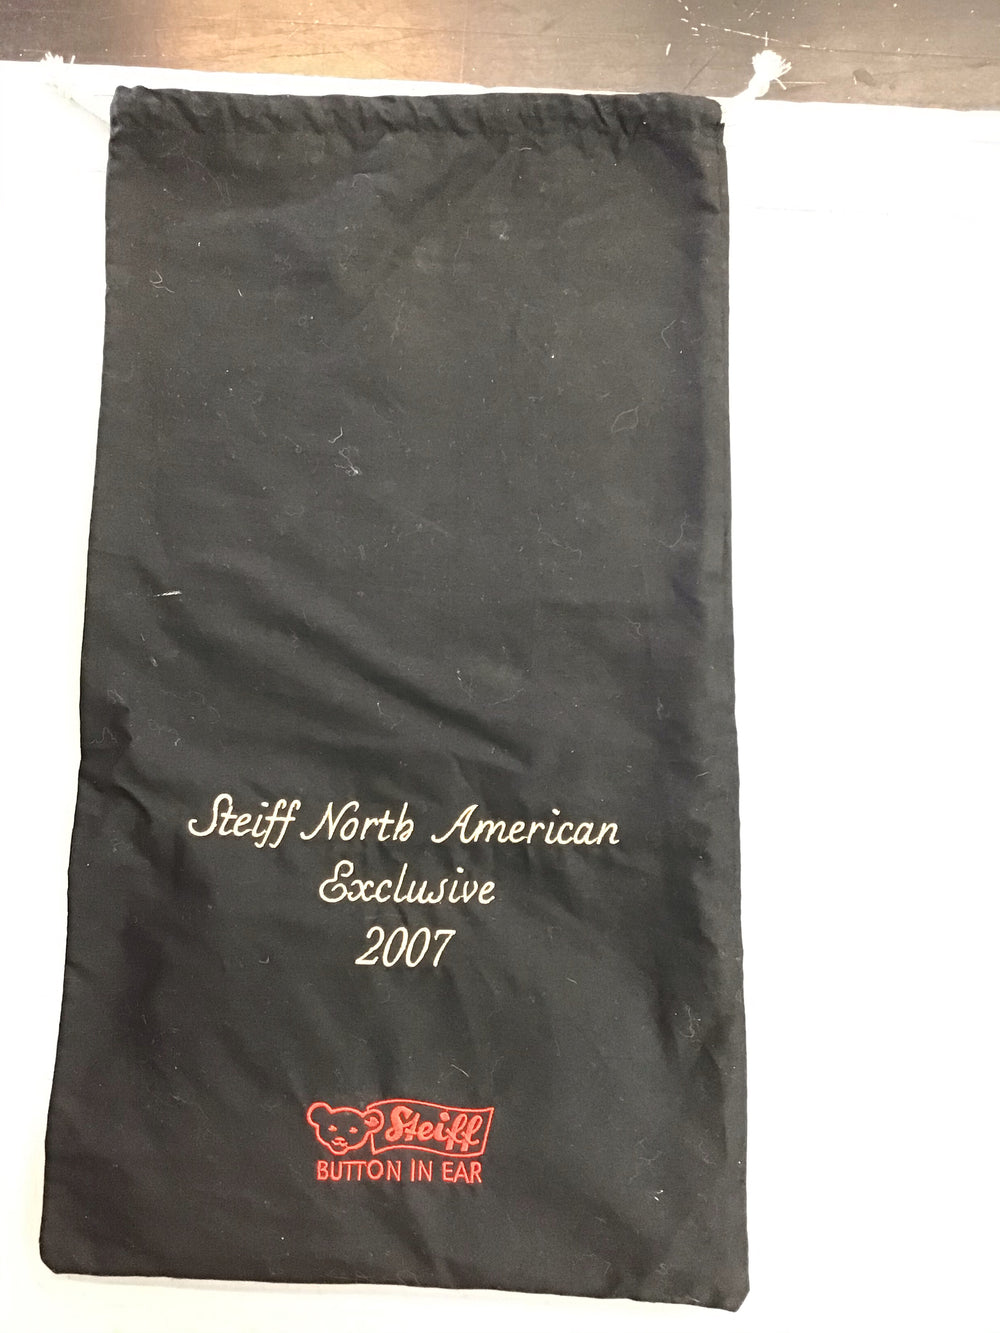 Steiff North American Exclusive 2007 BAG ONLY